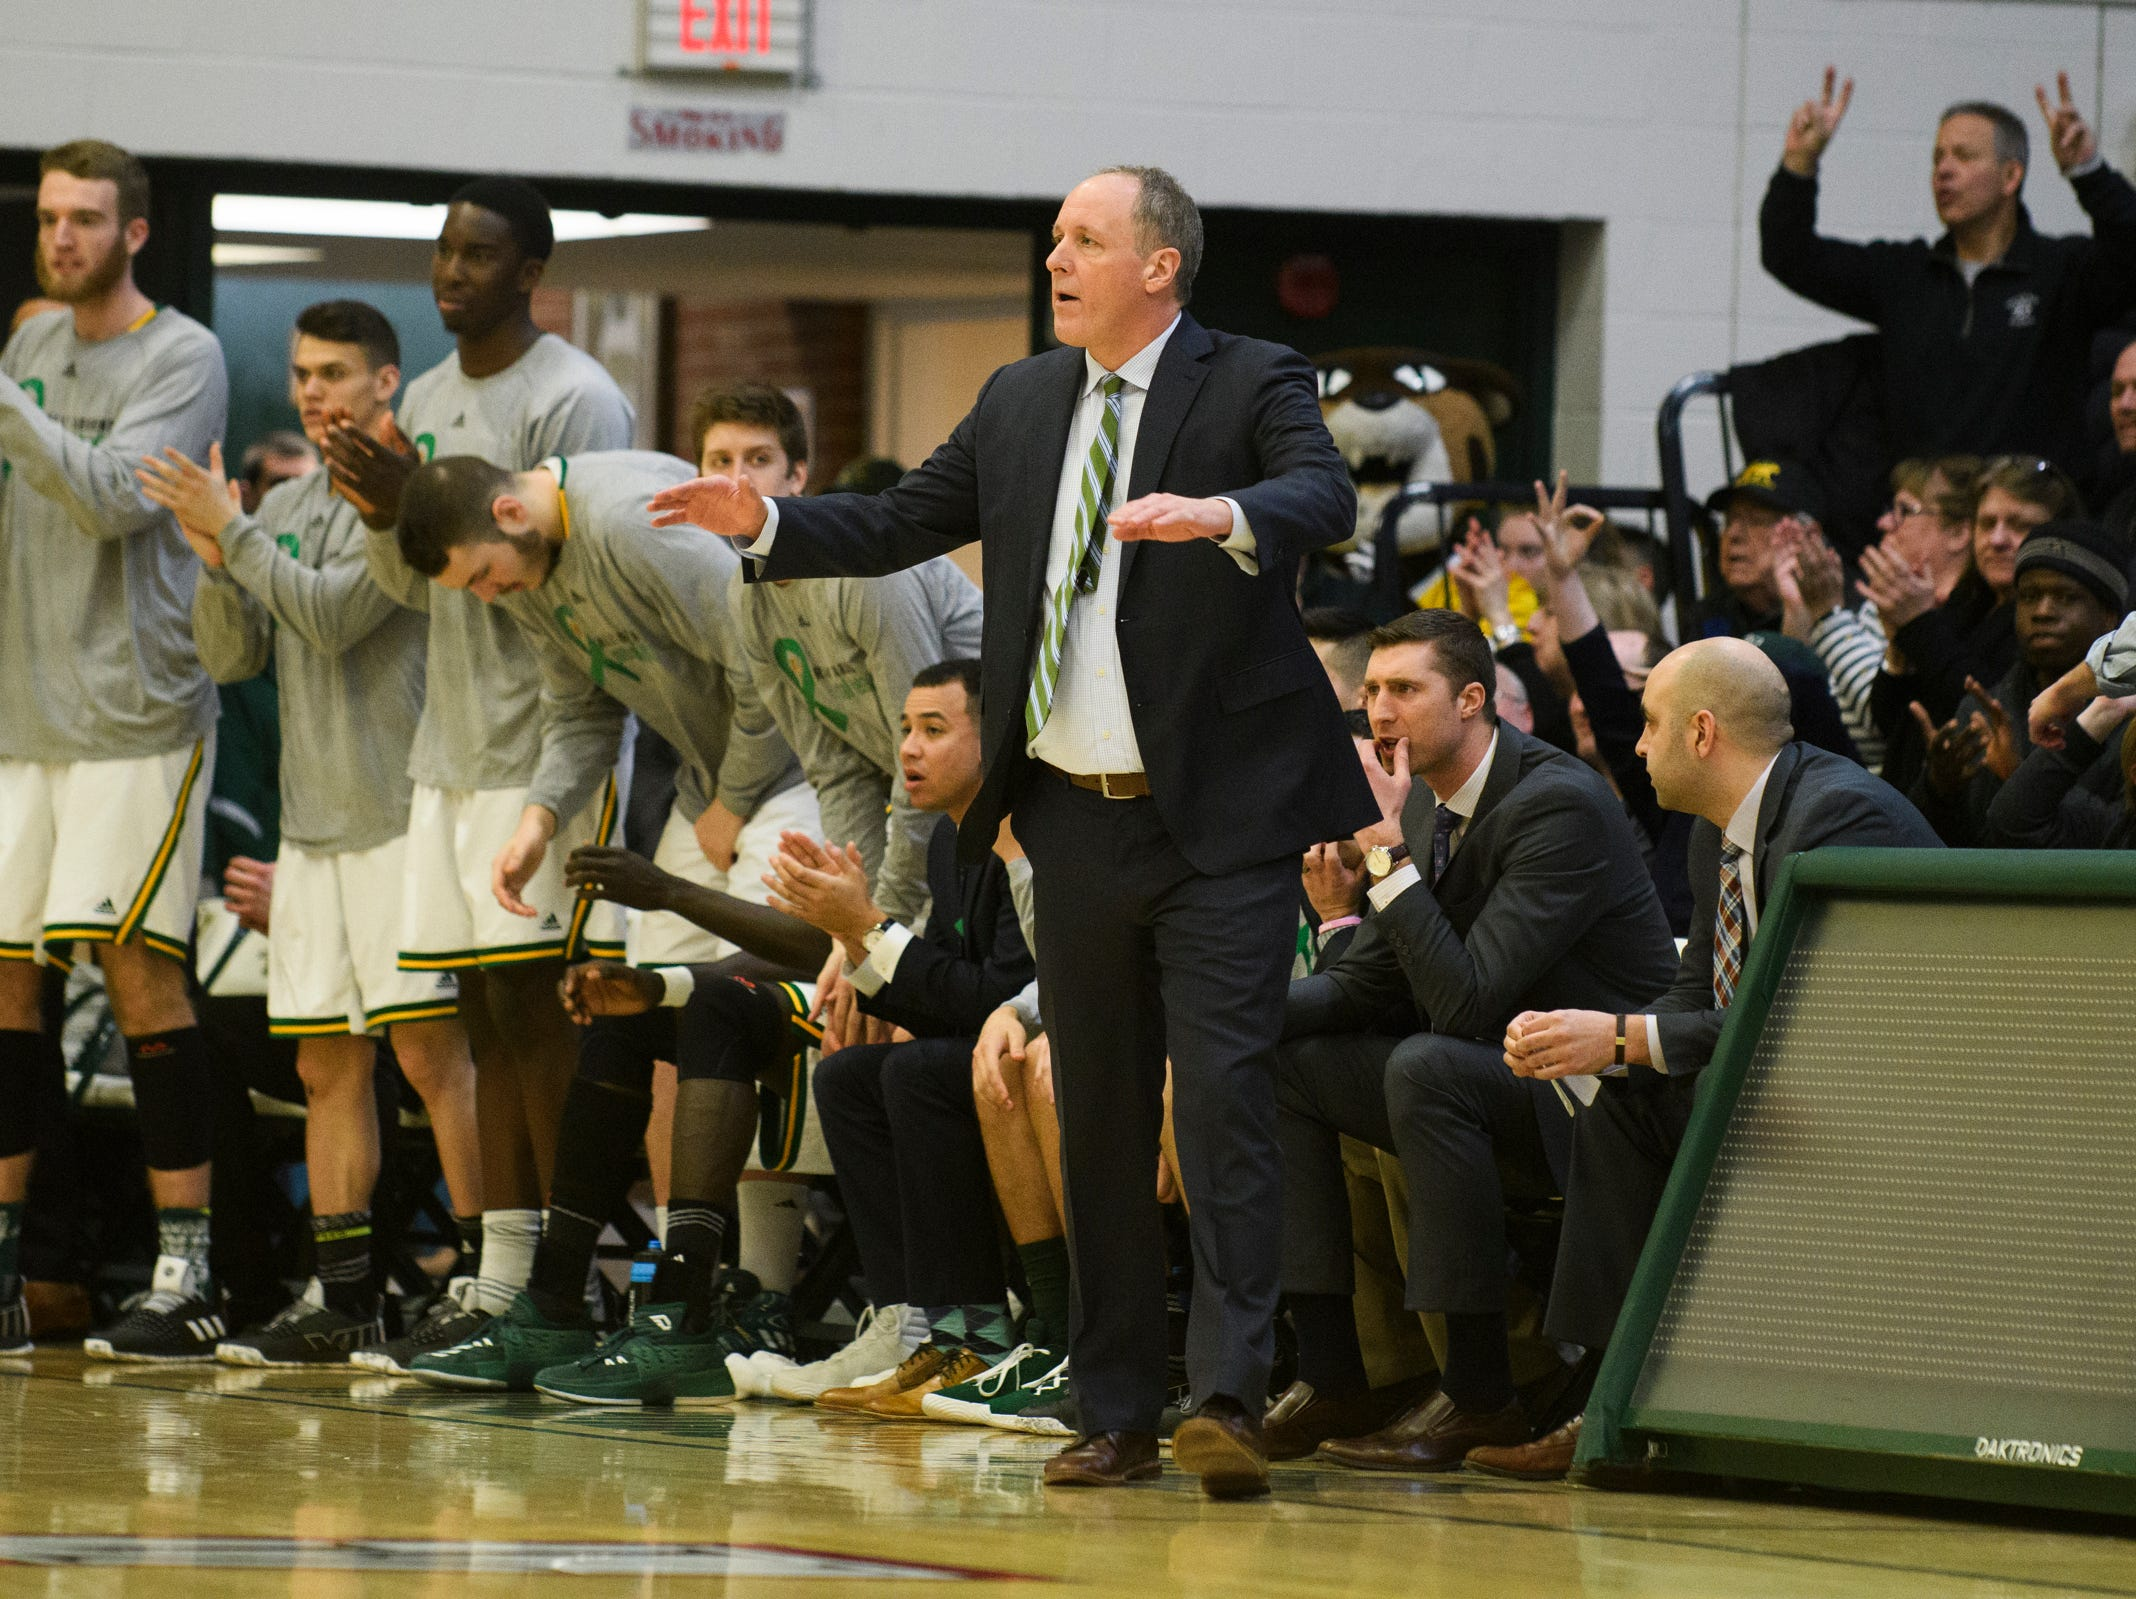 Vermont head coach John Becker talks to the team on the court during the men's basketball game between the Stony Brook Seawolves and the Vermont Catamounts at Patrick Gym on Saturday night March 2, 2019 in Burlington, Vermont.